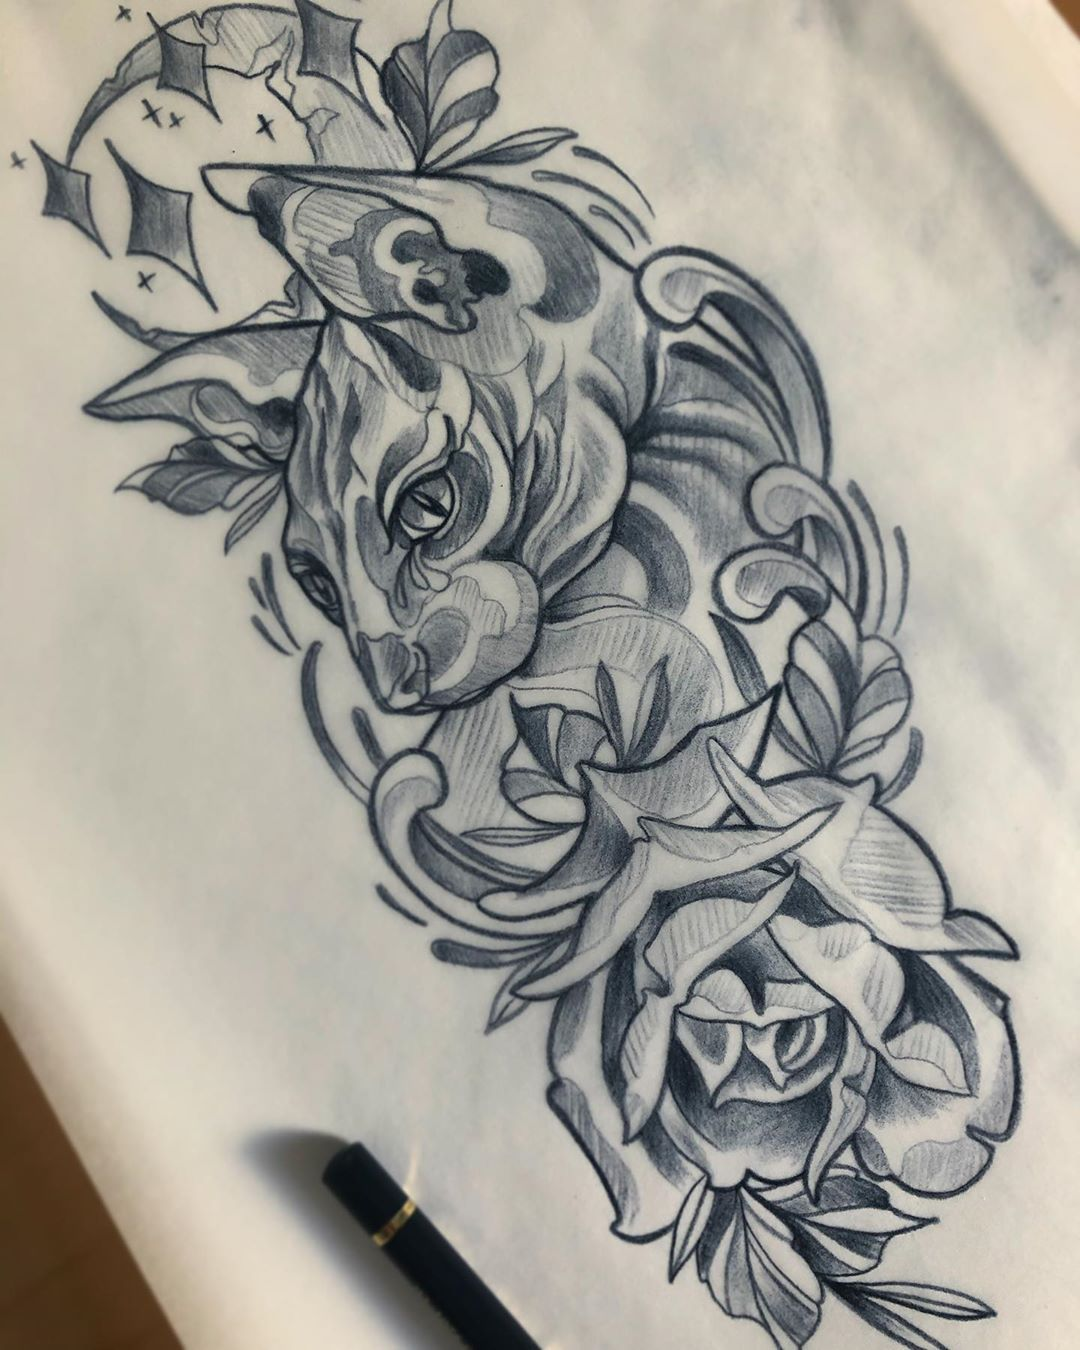 NakedPussy🐱 #tattoo#tattoos#tattooart#tattoosofinstagram#tattooideas#tattooist#tattooing#tattooartist#tatuaje#tatuagem#ink#inked#inkedup#inkstagram#inkedgirls#inkedbabes#girlswithtattoos#eastsidetattoomagdeburg#sketch#drawing#art#sphynxcat#